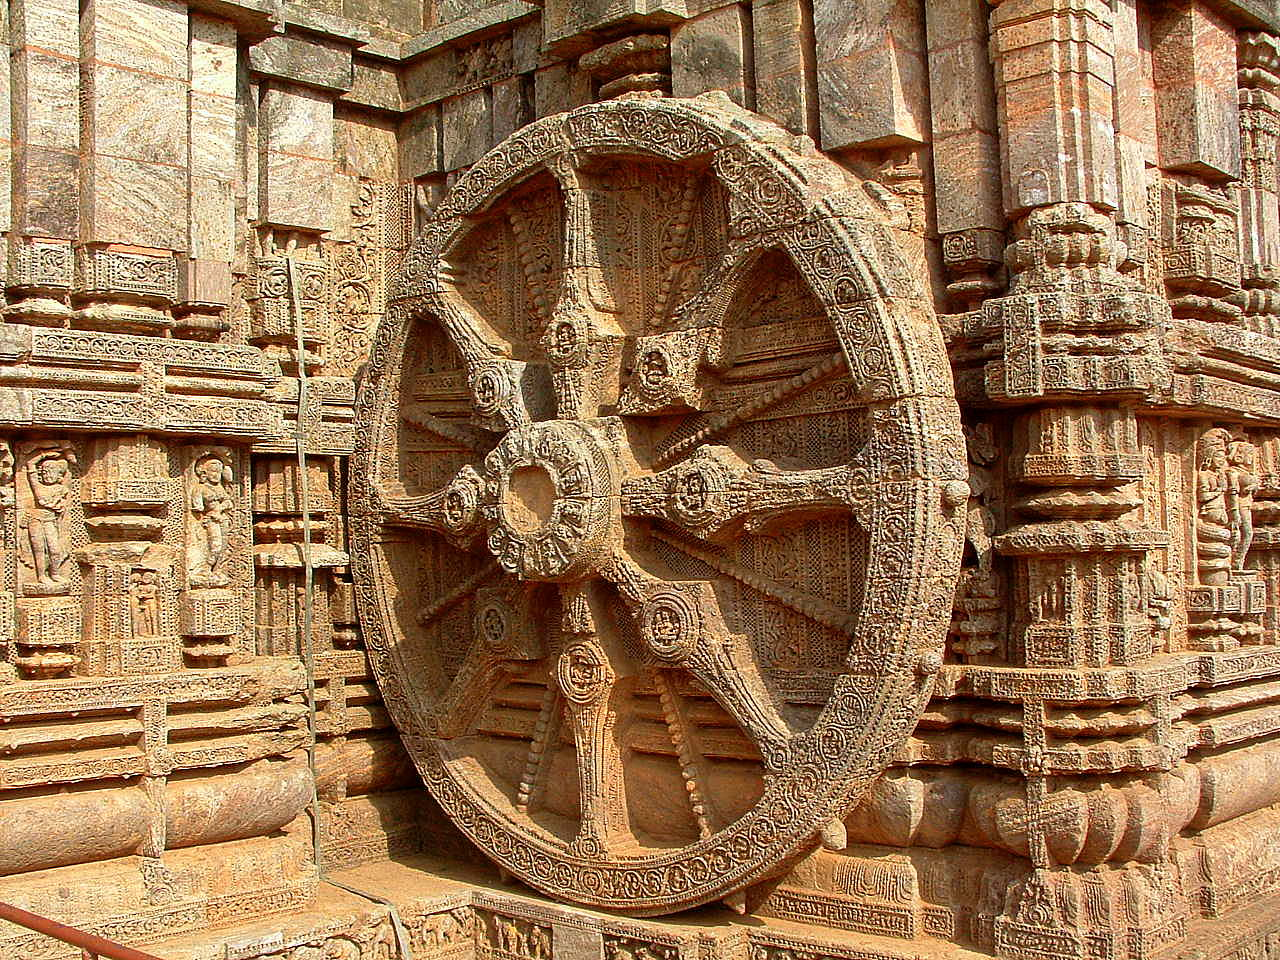 "The image ""http://upload.wikimedia.org/wikipedia/commons/e/e2/Wheel_of_Konark%2C_Orissa%2C_India.JPG"" cannot be displayed, because it contains errors."